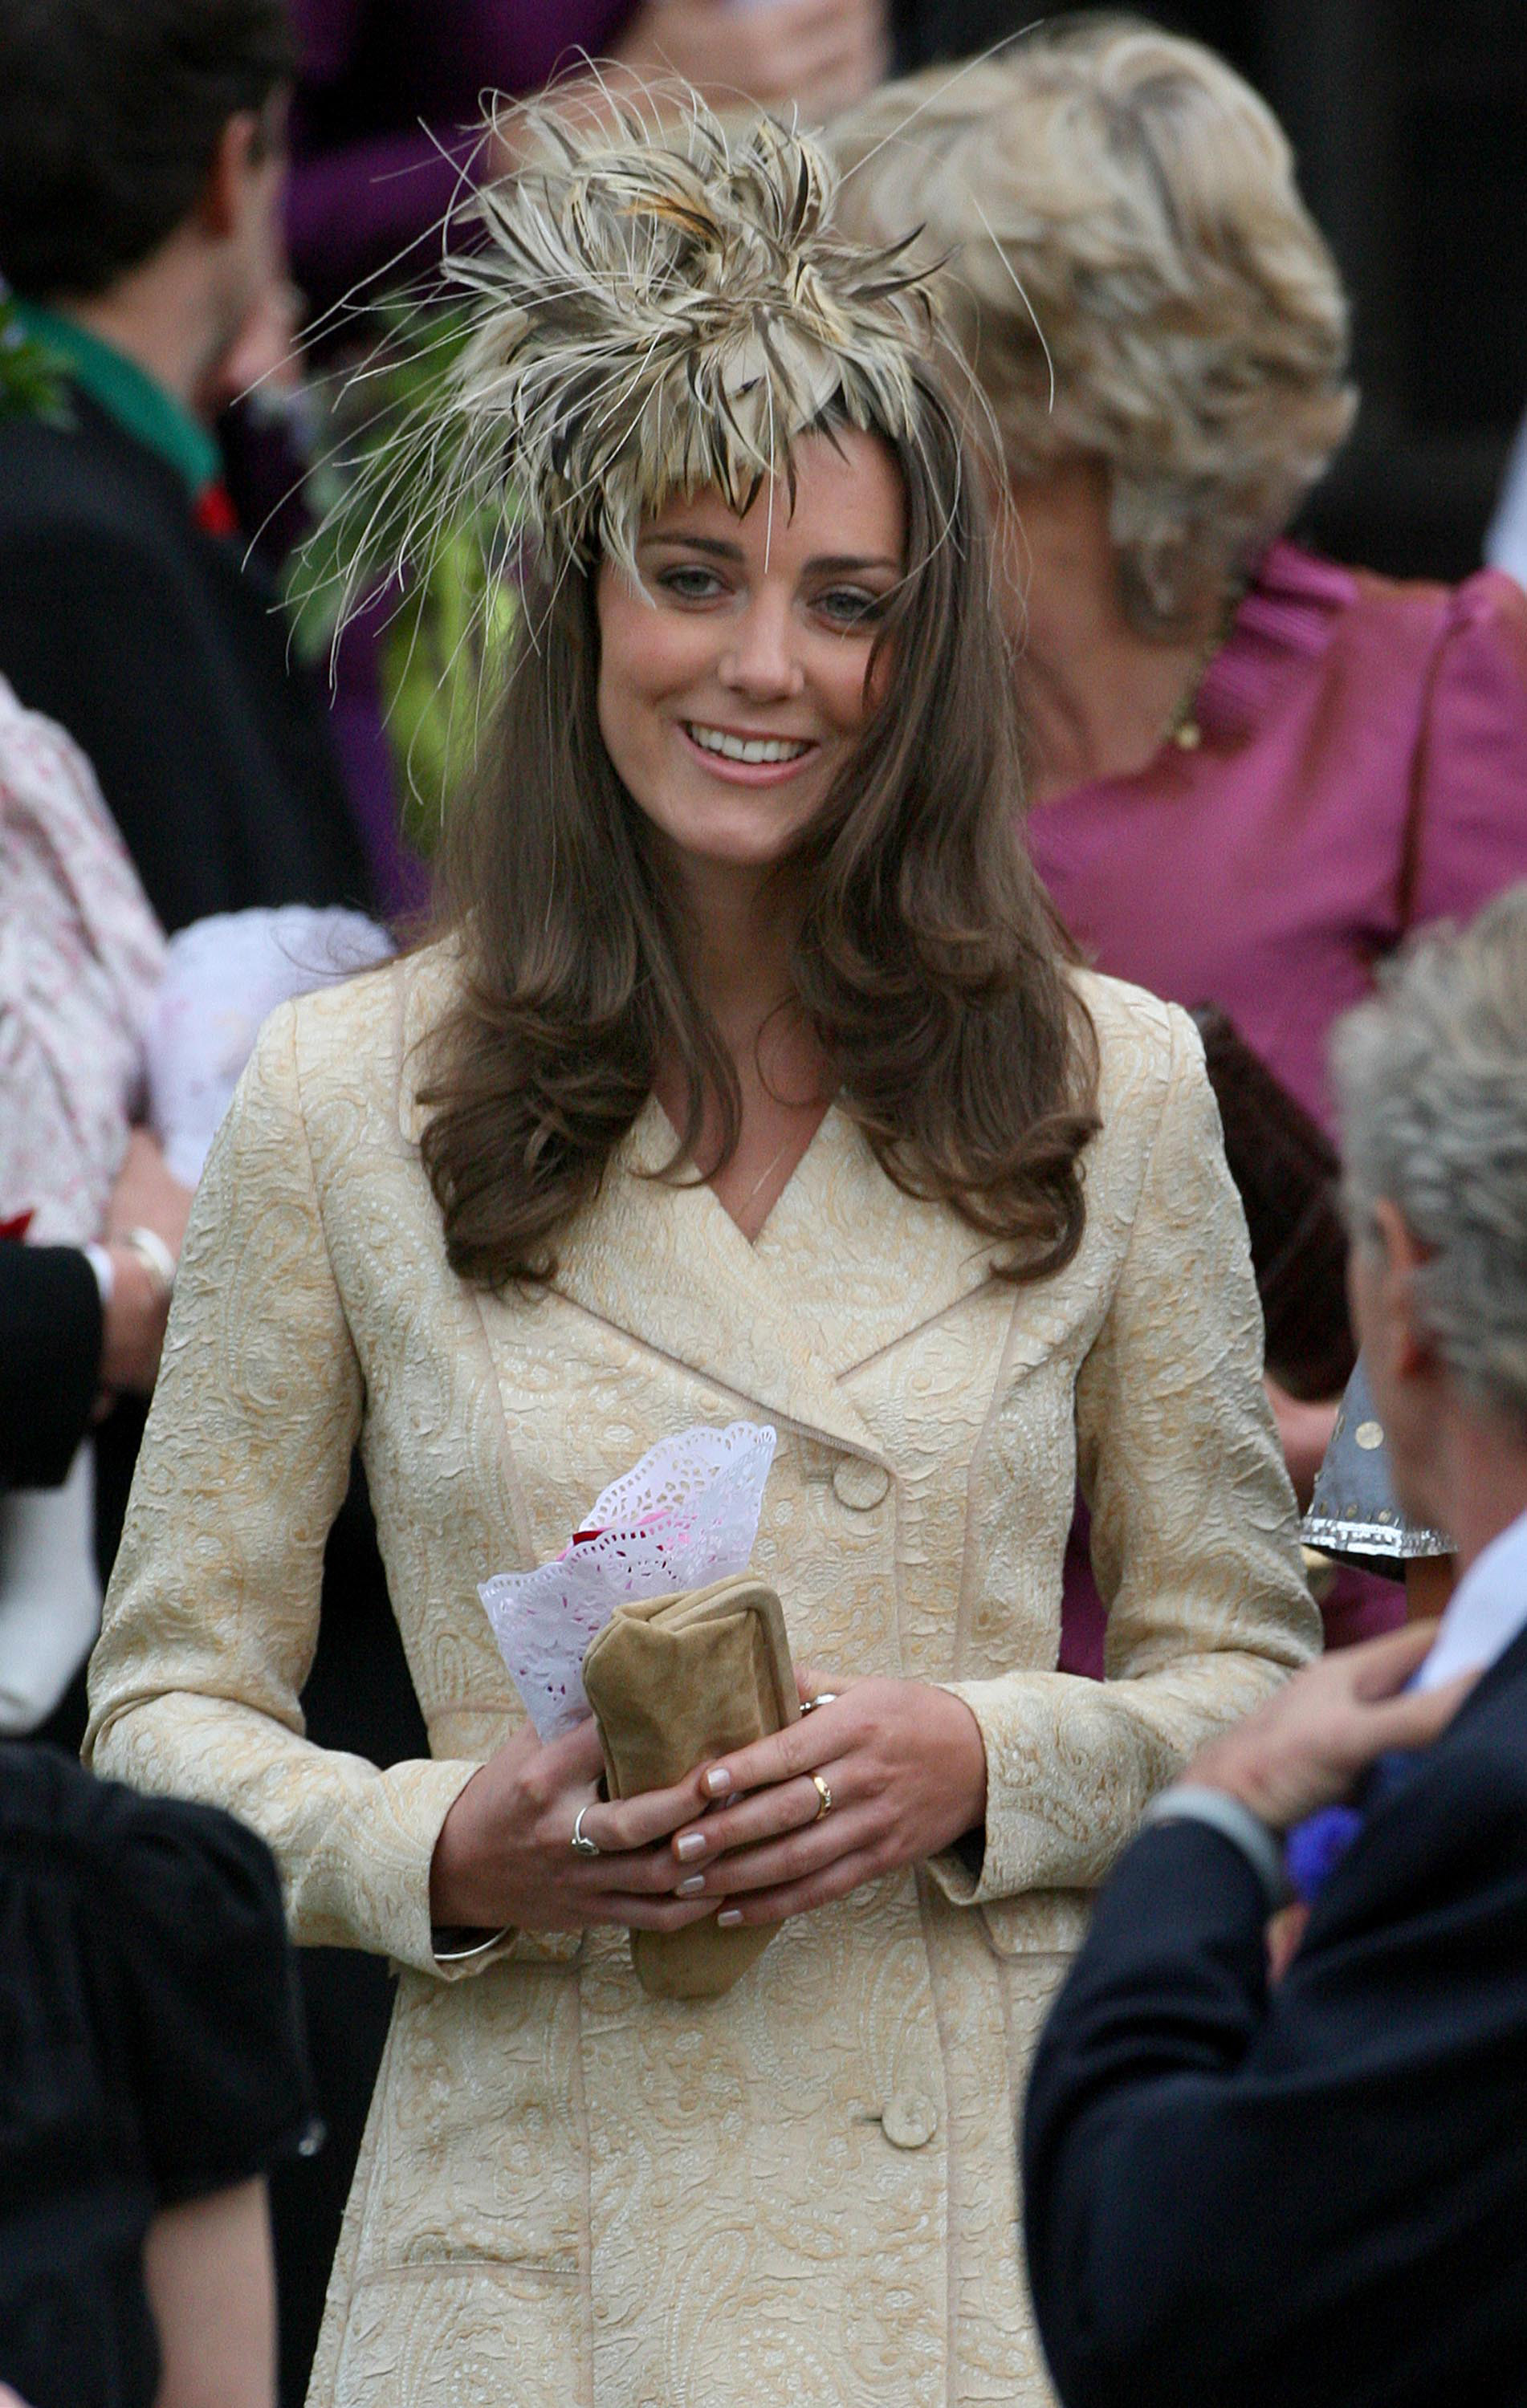 <strong>Hallmark Hat</strong>                                   At the wedding of Prince Charles and Camilla Parker Bowles on May 6, 2006, Middleton showed her trademark style: fitted trench coat and extravagant headpiece. Her attendance solidified her status as official royal girlfriend and further fueled engagement rumors.